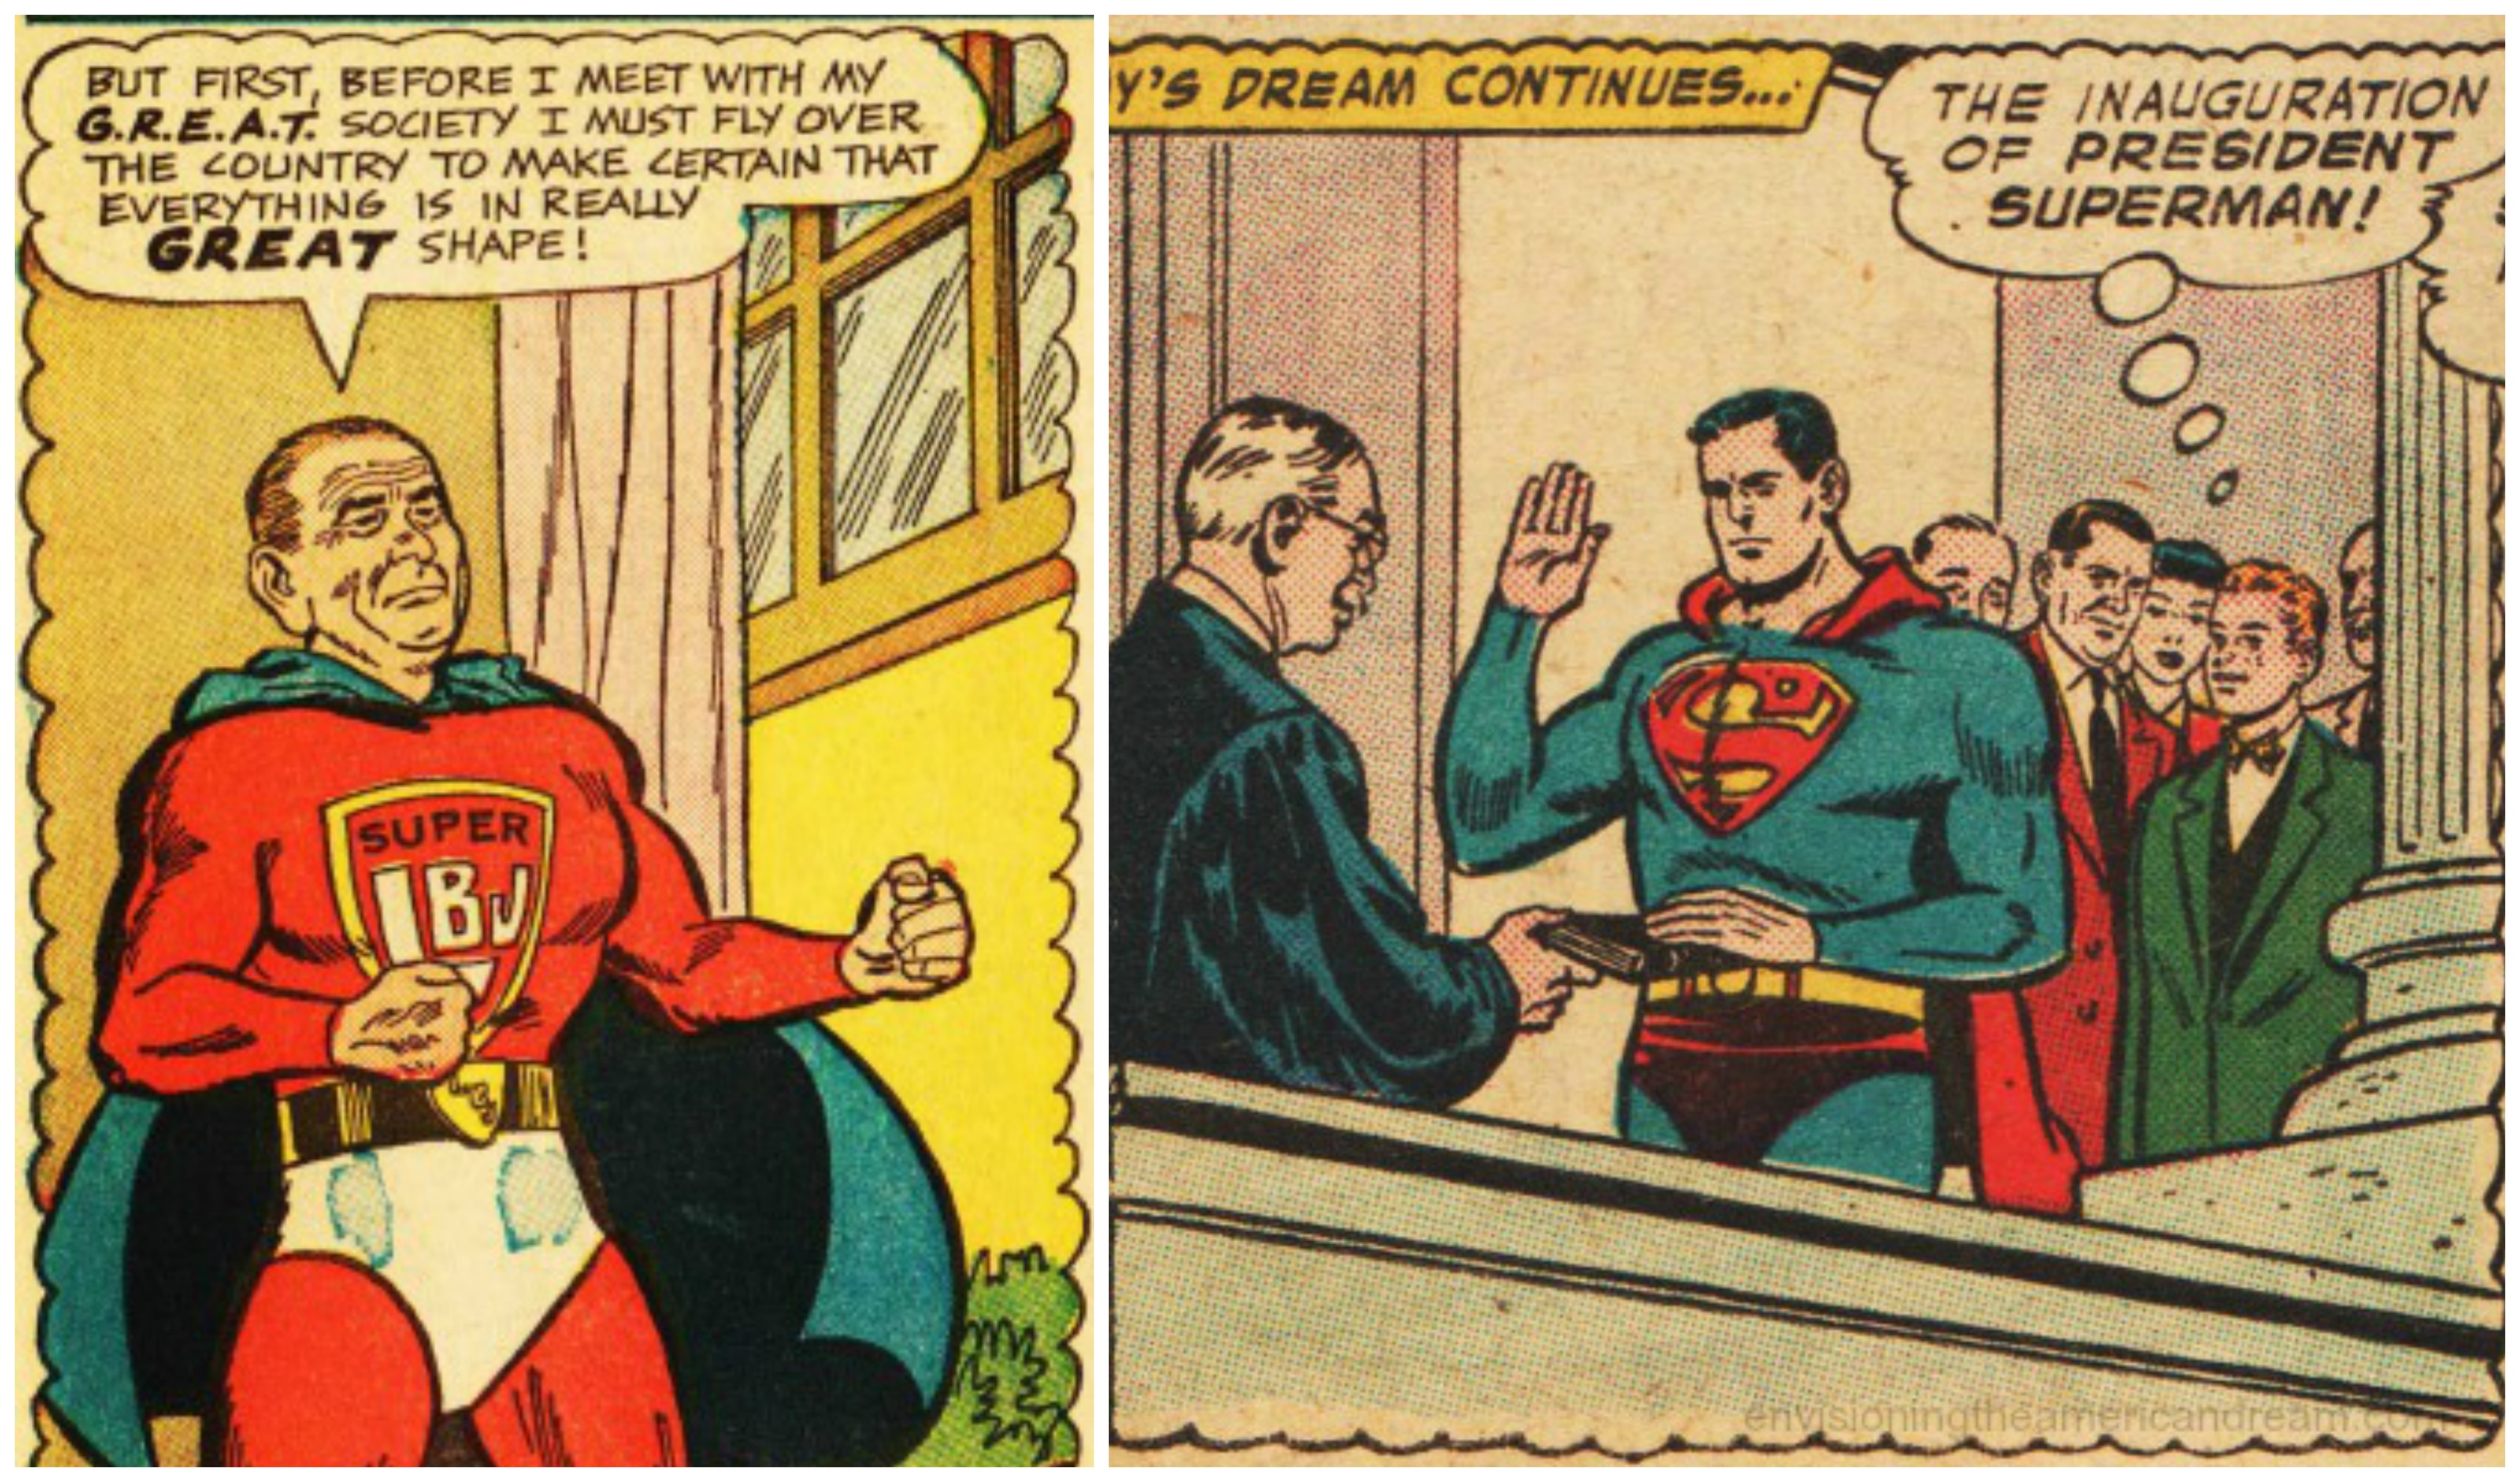 superman all american essay Batman is a fictional superhero who appears in american comic books published by dc comics first of all, superman may be a demi-god but when it comes down to a battle of wits batman would literally make superman blow up just like krypton.